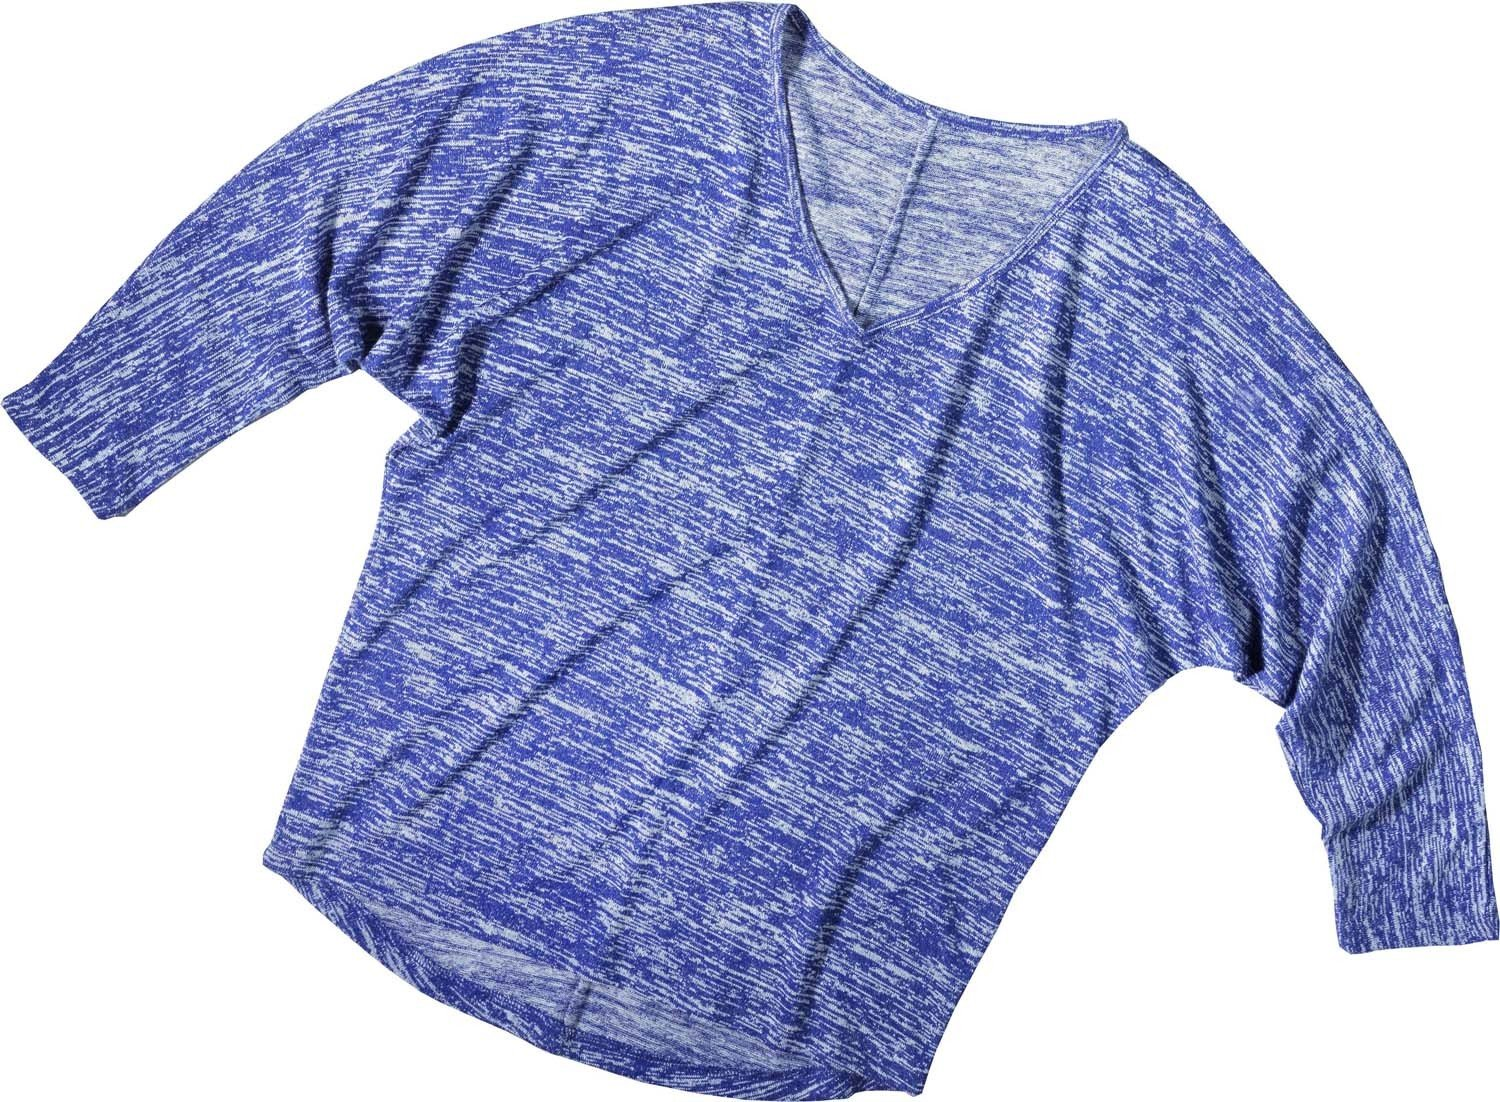 D-3/4-Arm-Top,Flederm.violett XL 036 - 1 - Ronja.ch